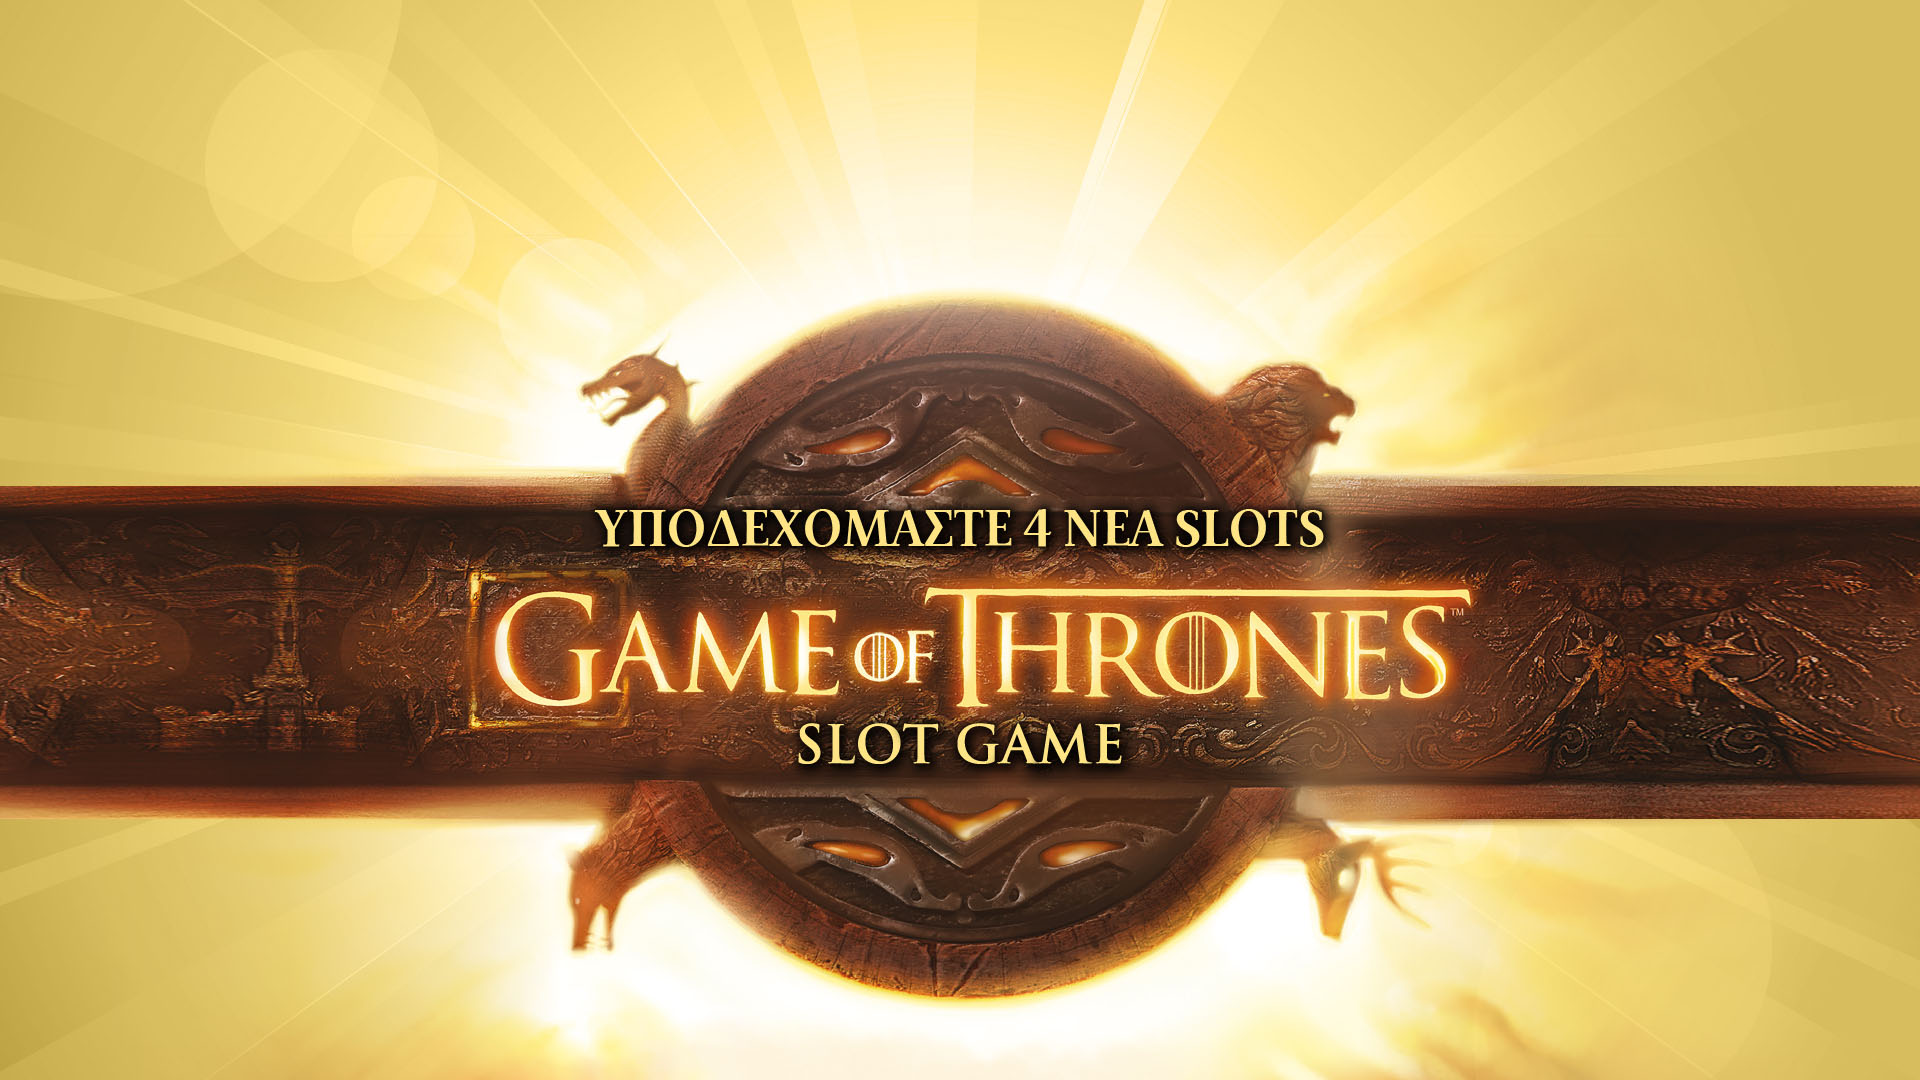 Game-of-Thrones-New-Slots_Slideshow-001-01